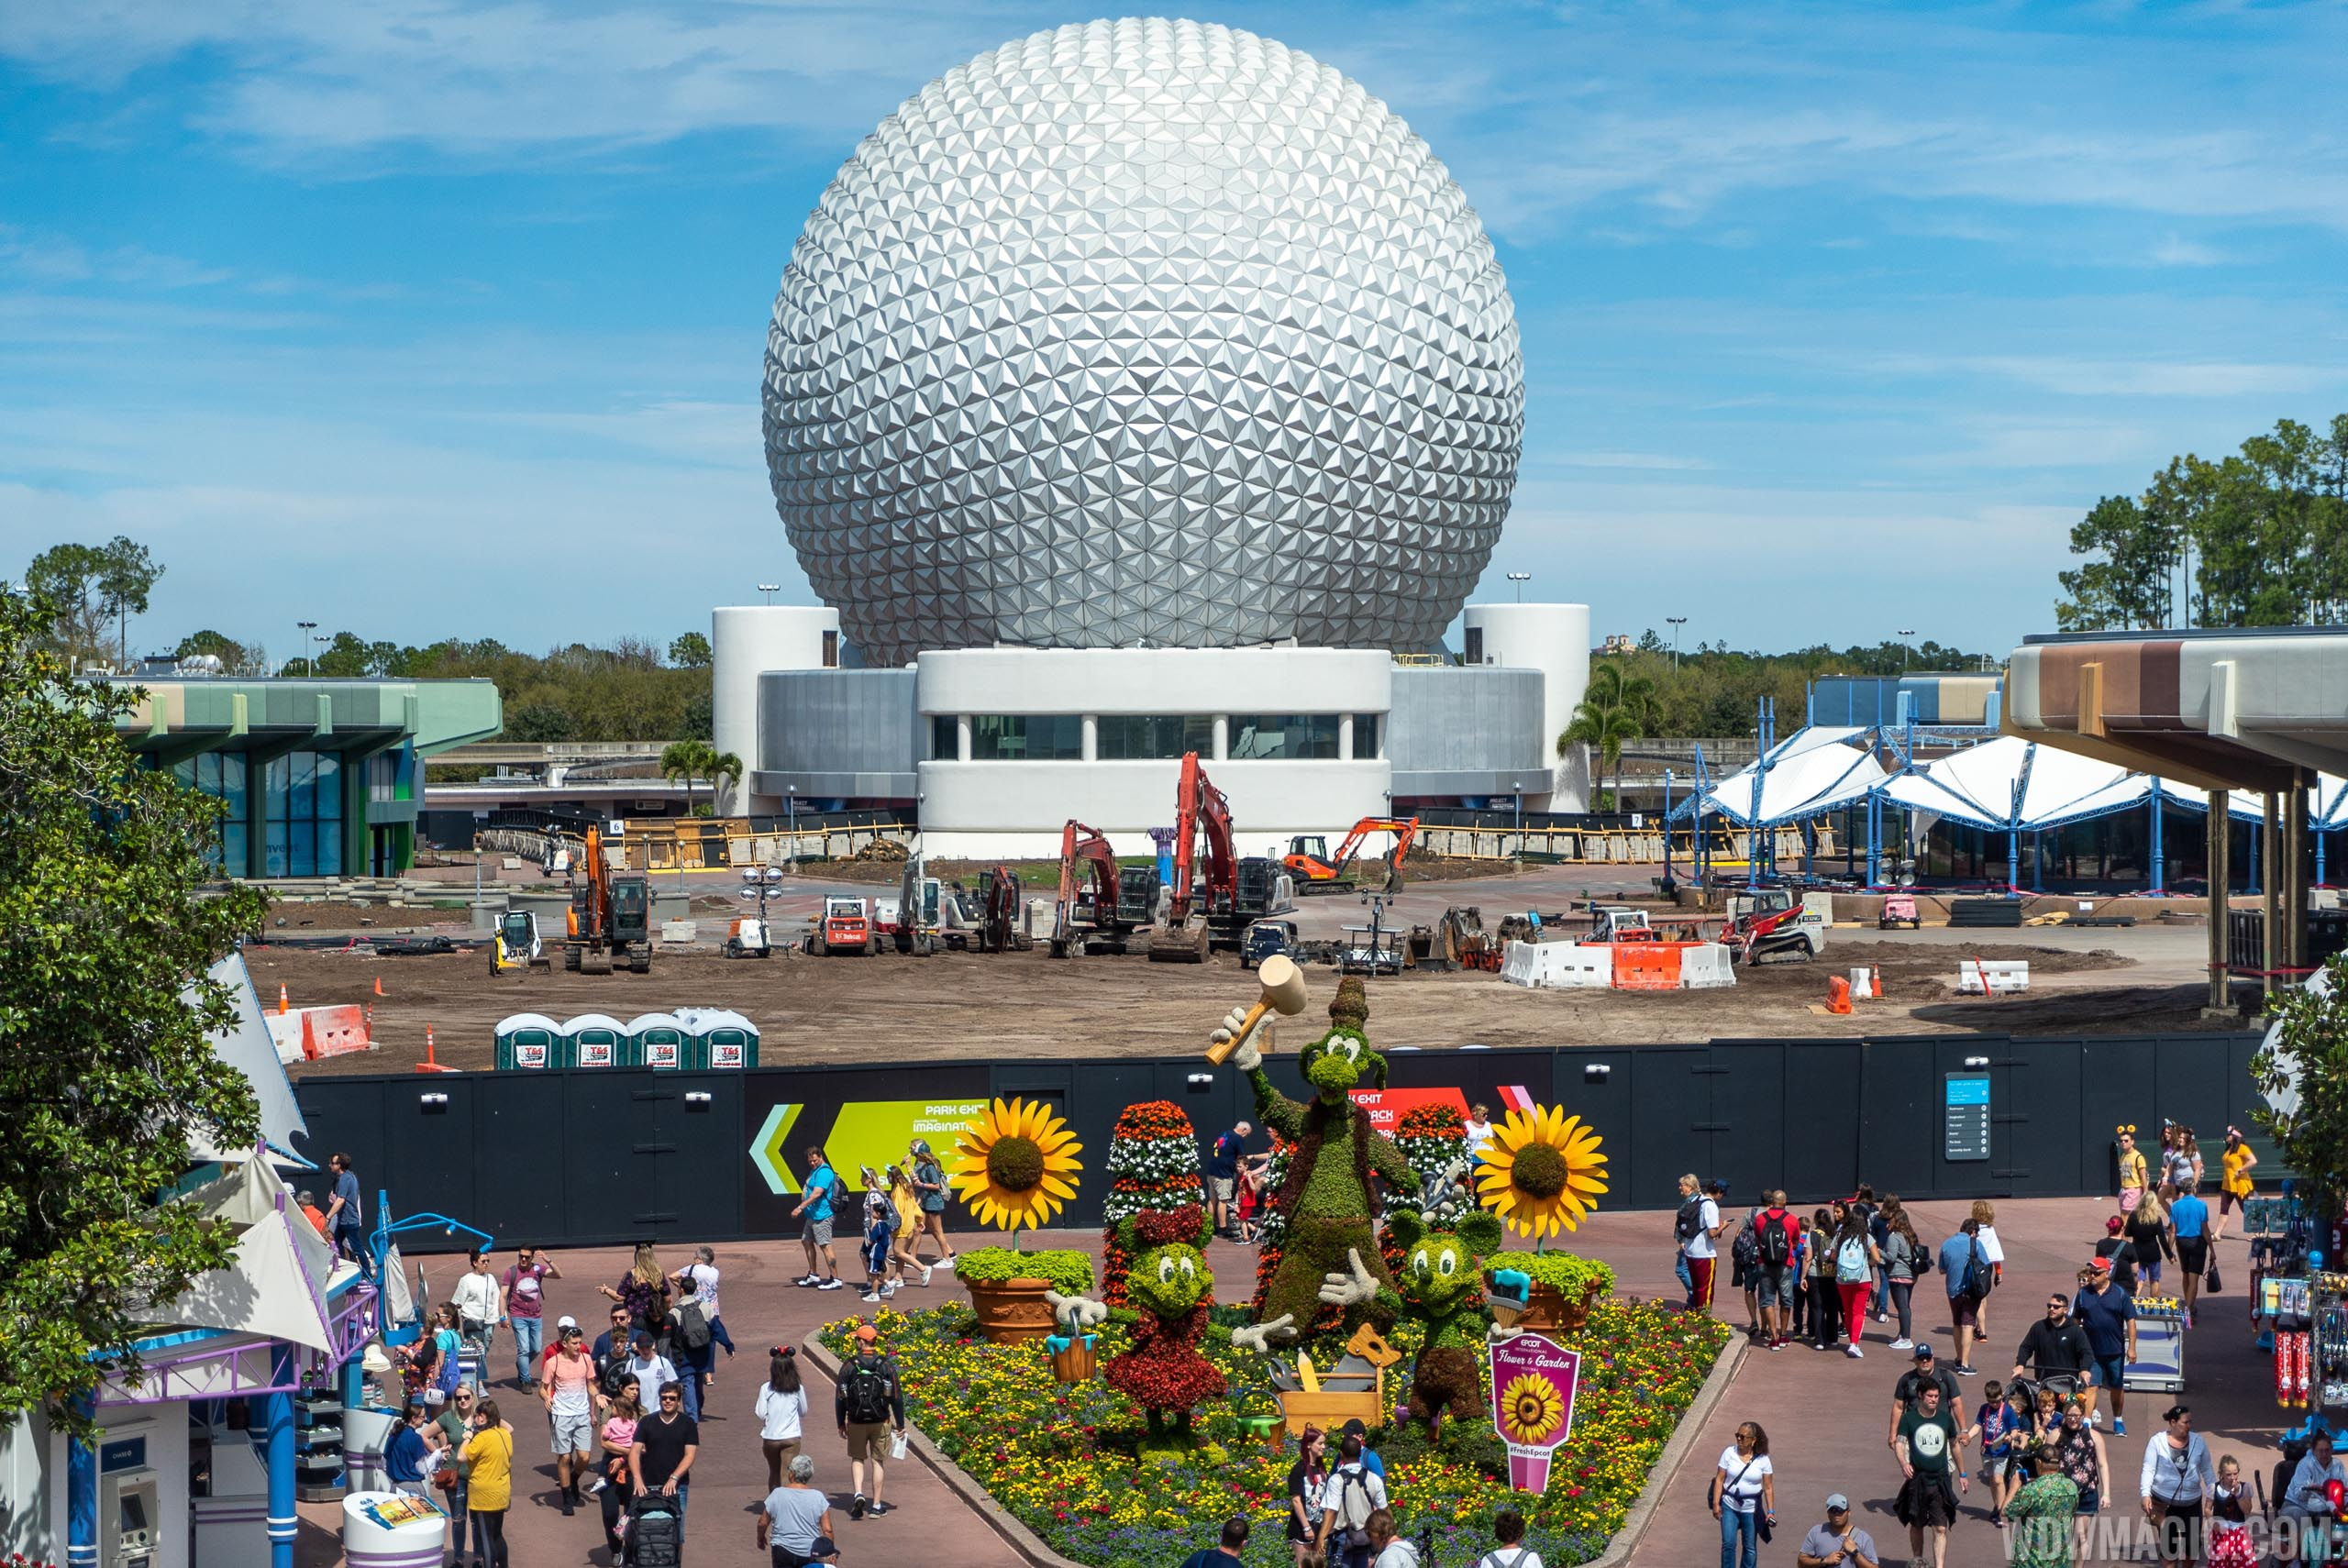 The EPCOT central core is still in a demolition phase